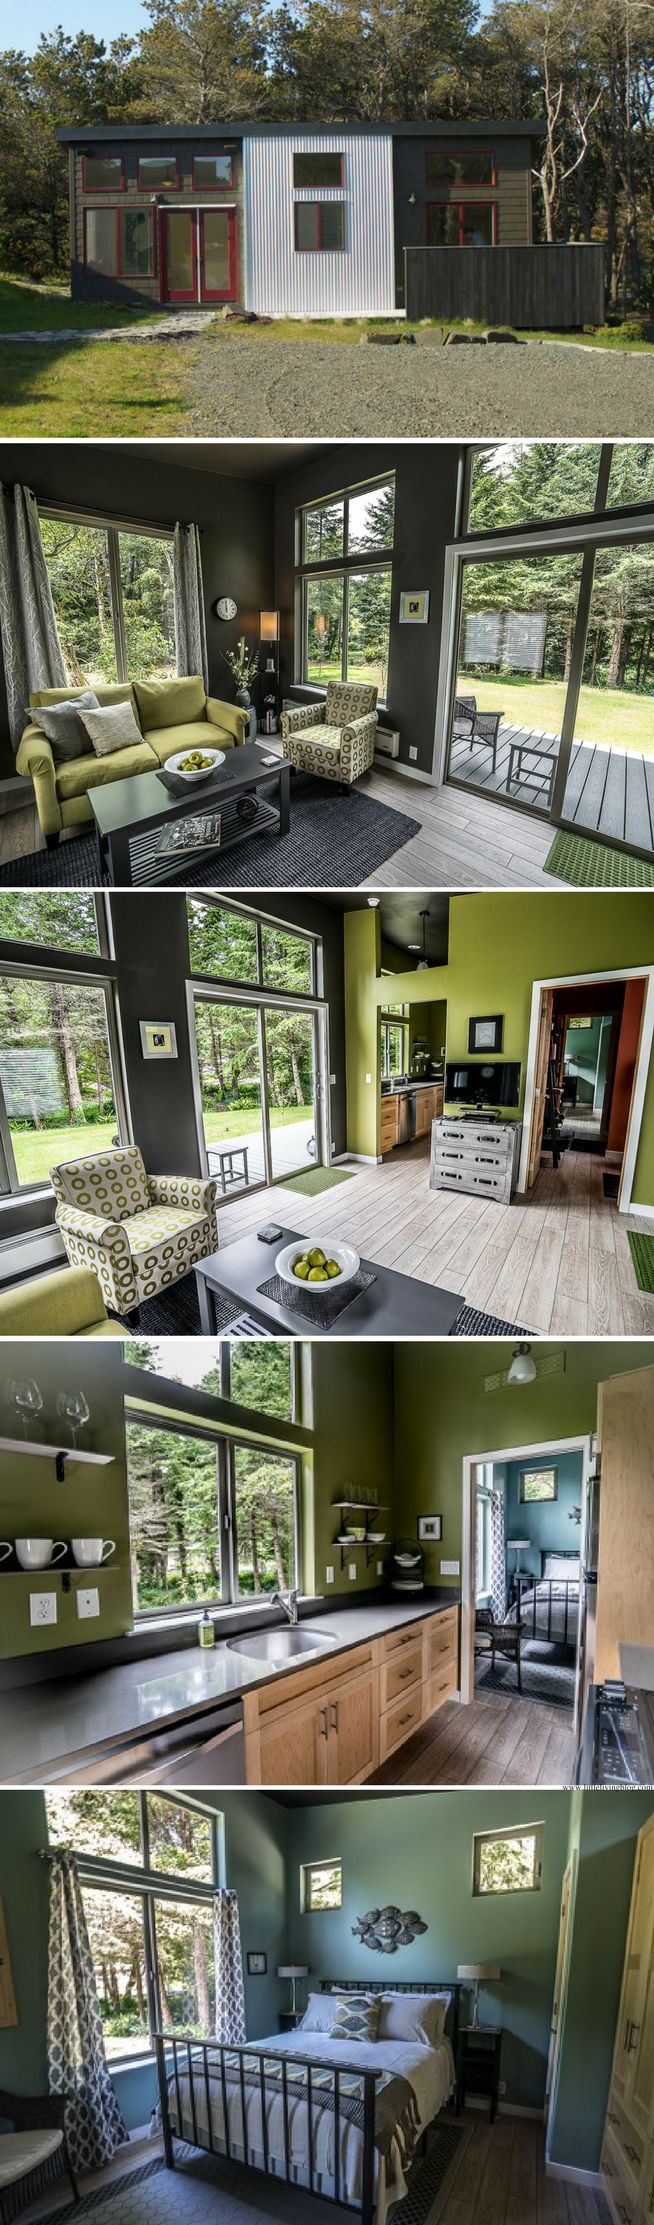 best 20 prefab homes ideas on pinterest modern prefab homes the northwest prefab home from ideabox 540 sq ft